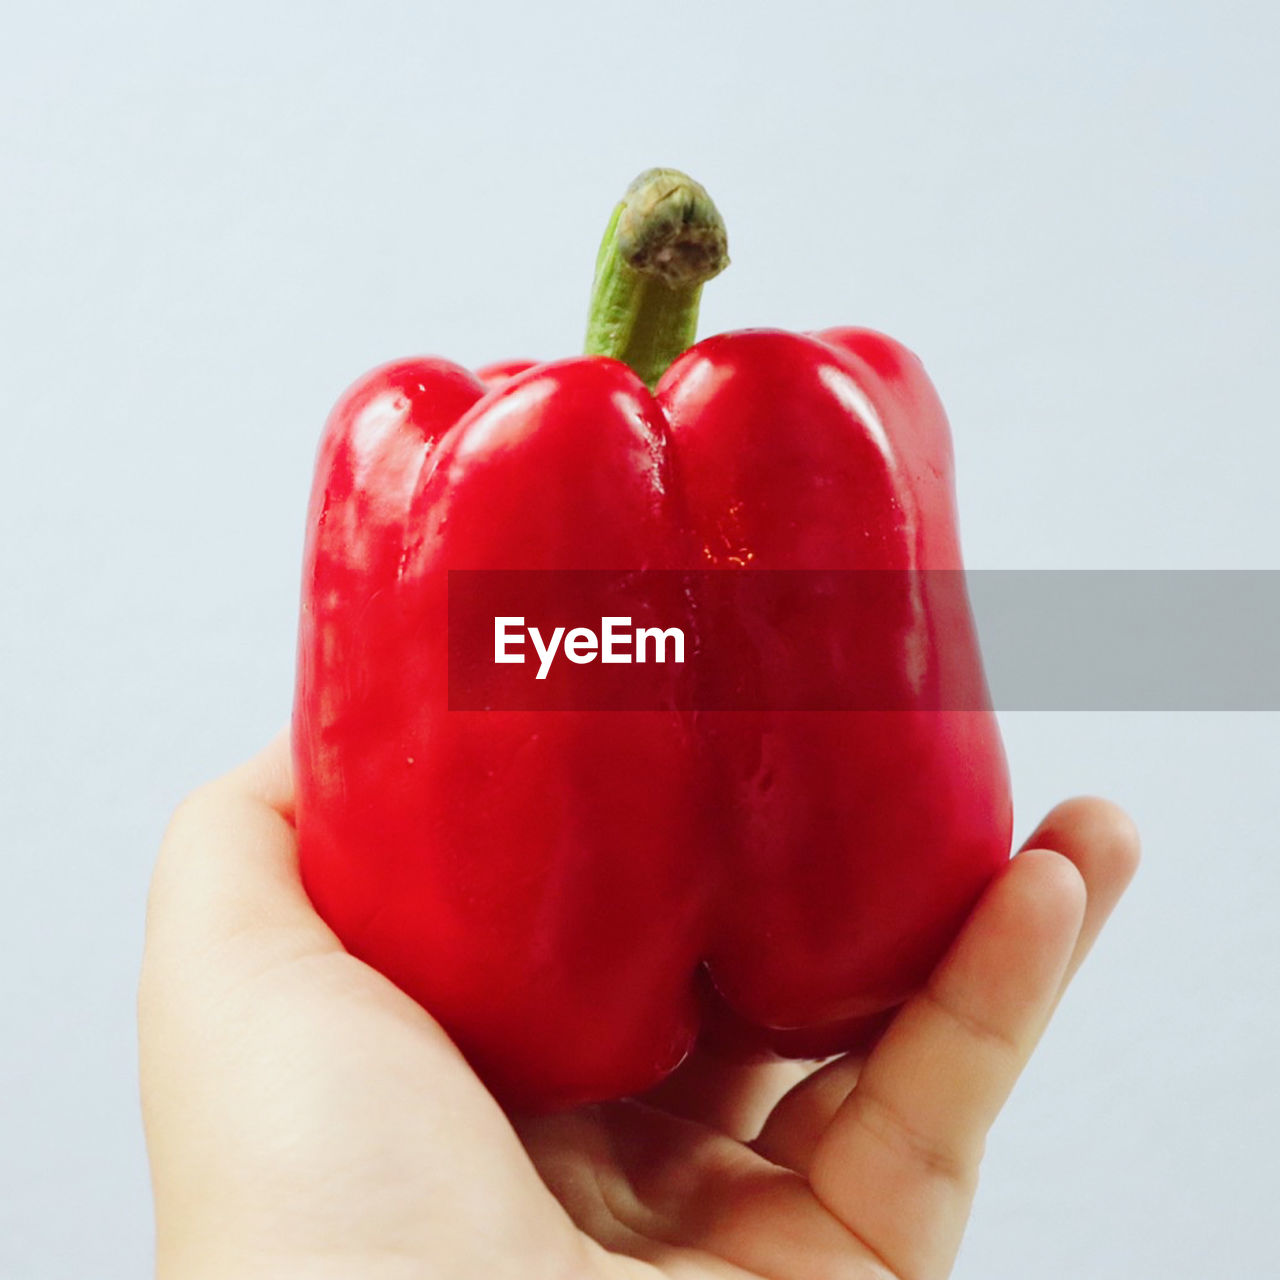 CLOSE-UP OF HAND HOLDING RED BELL PEPPER